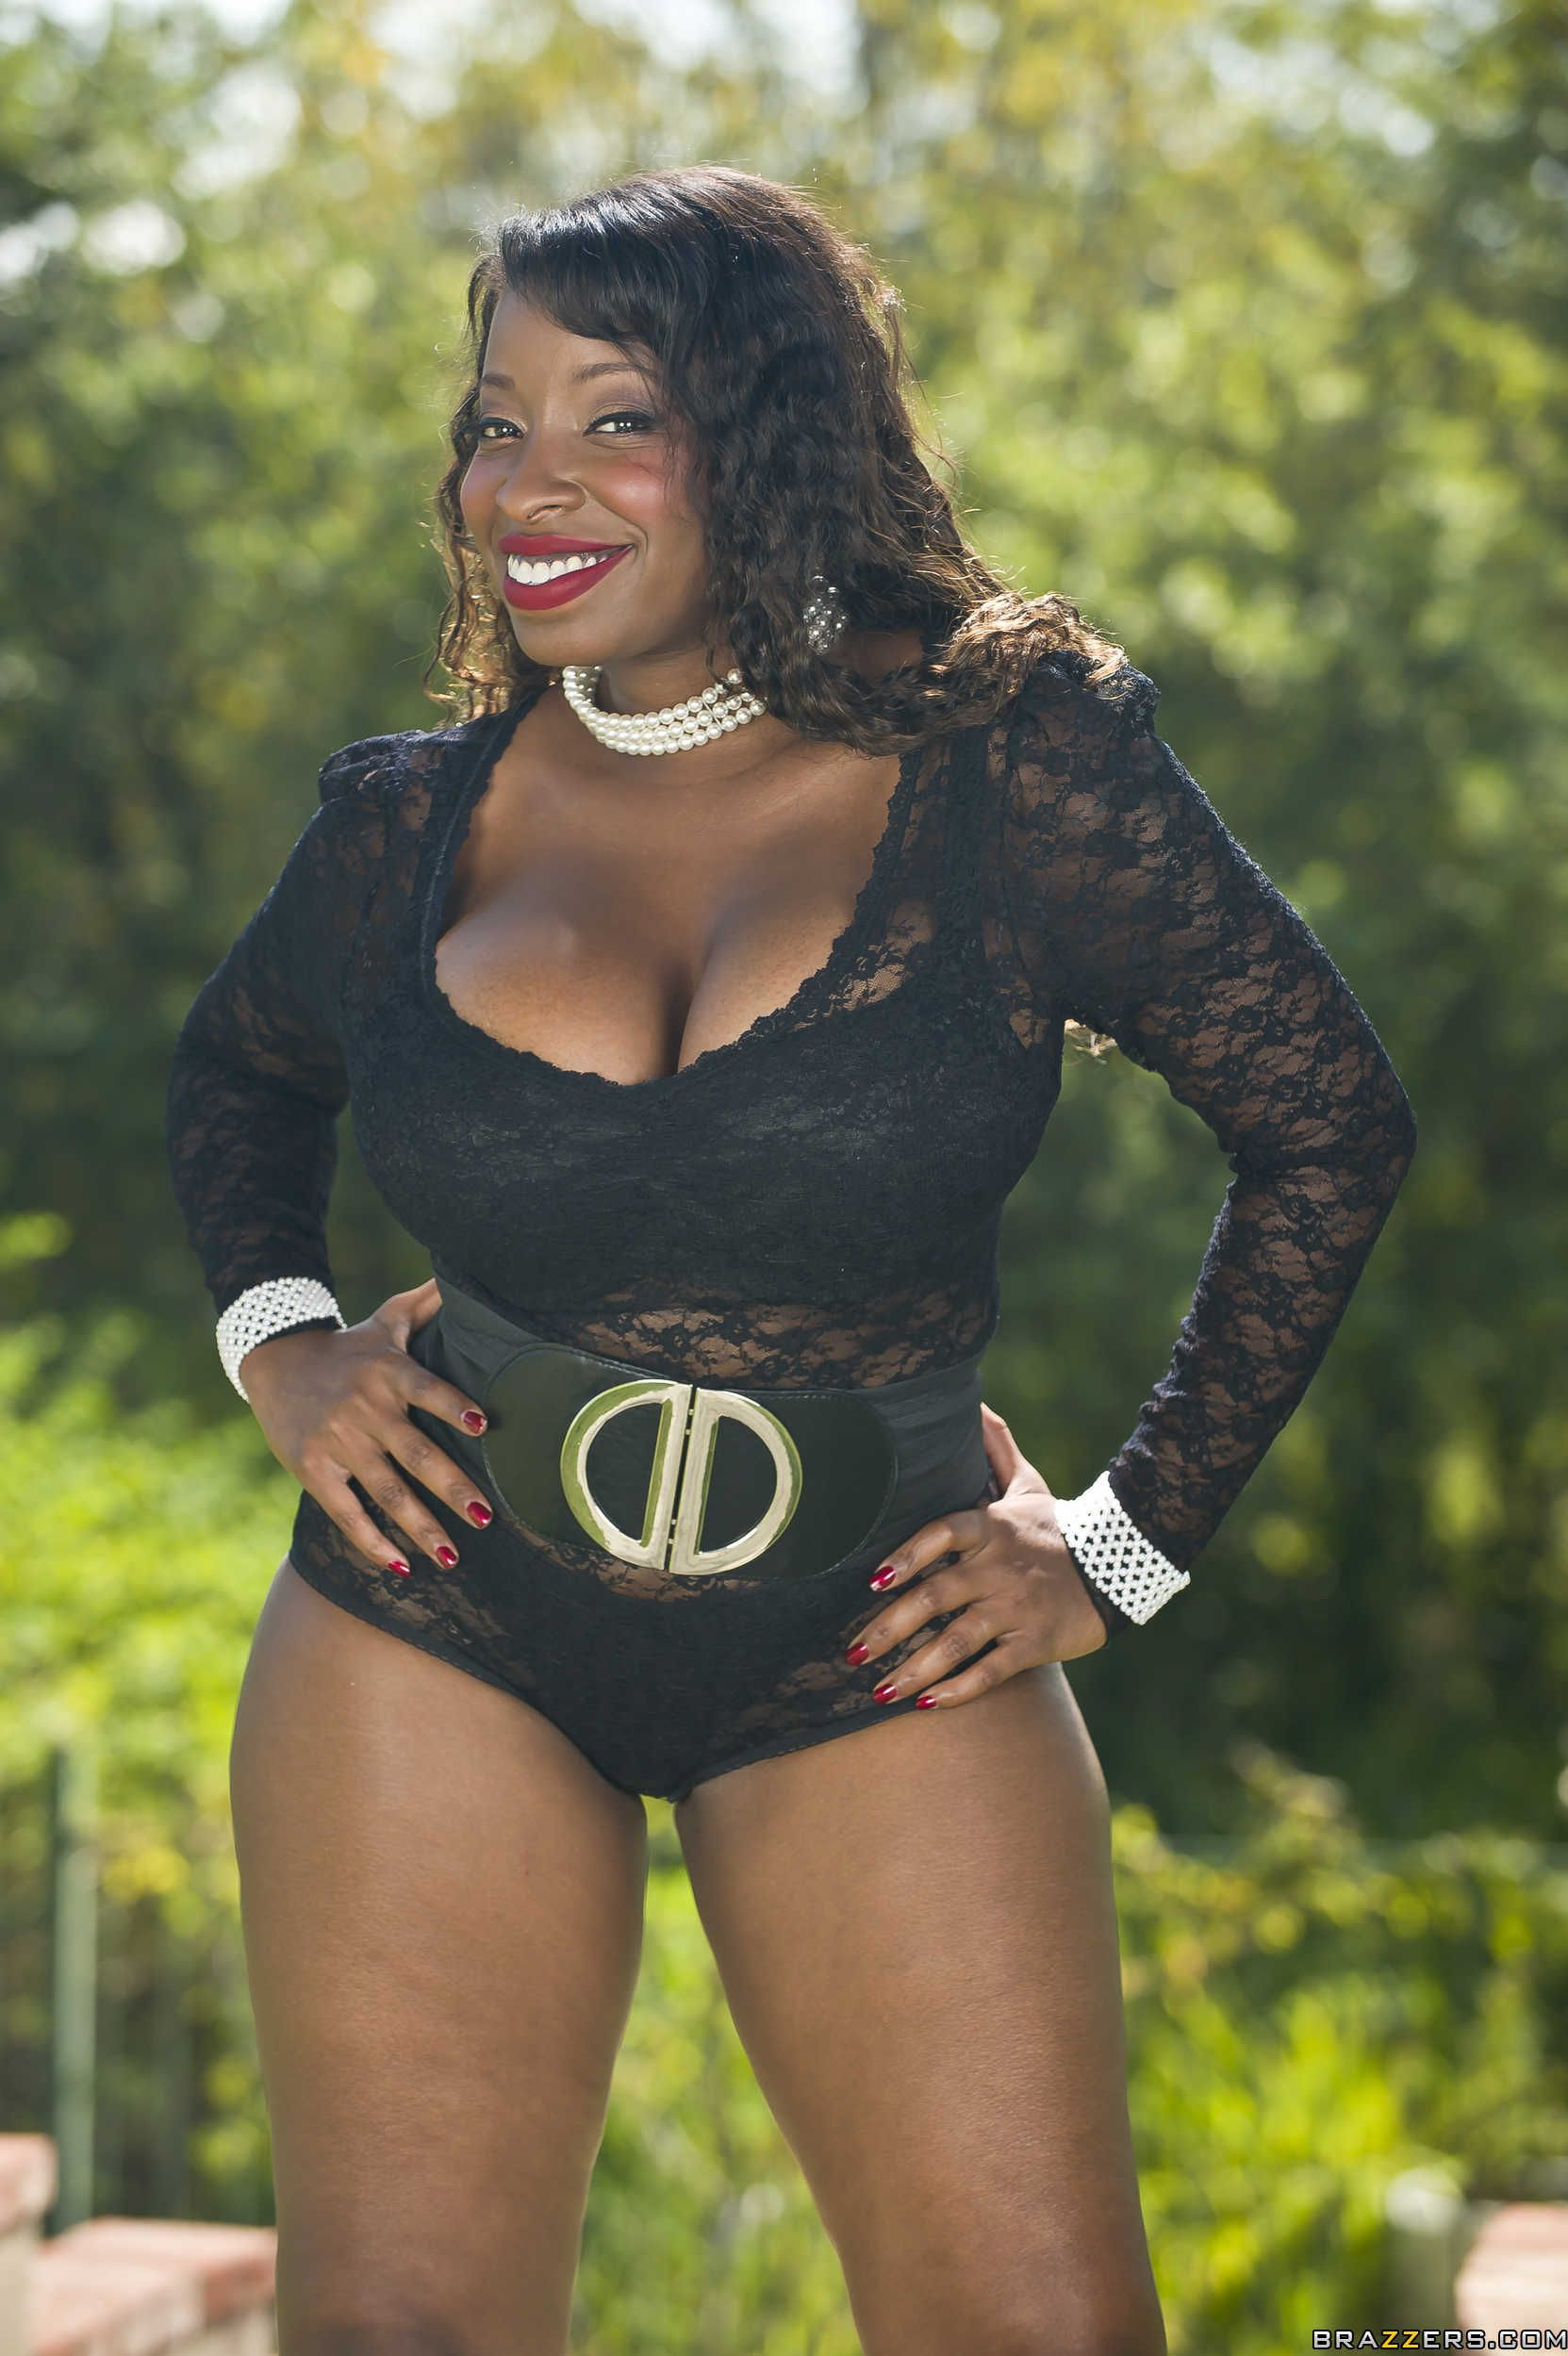 HBD Vanessa Blue May 27th 1974: age 42 | Famous Birthdays ...